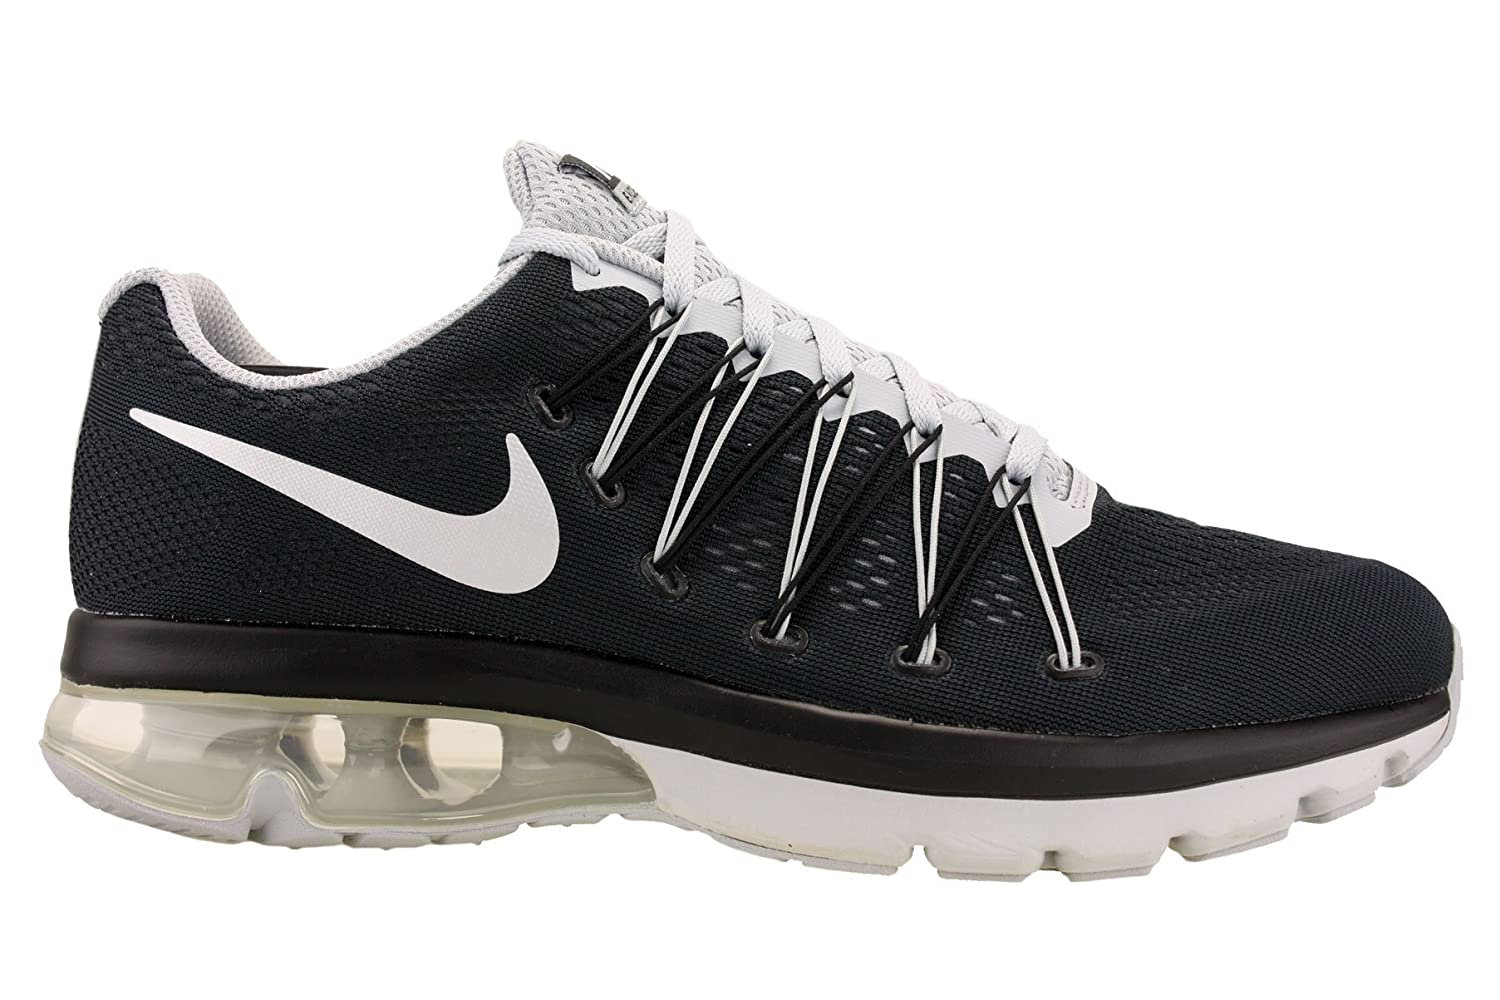 size 40 9b79d 24d1d low-cost Nike Mens Air Max Excellerate 5 Running Shoe